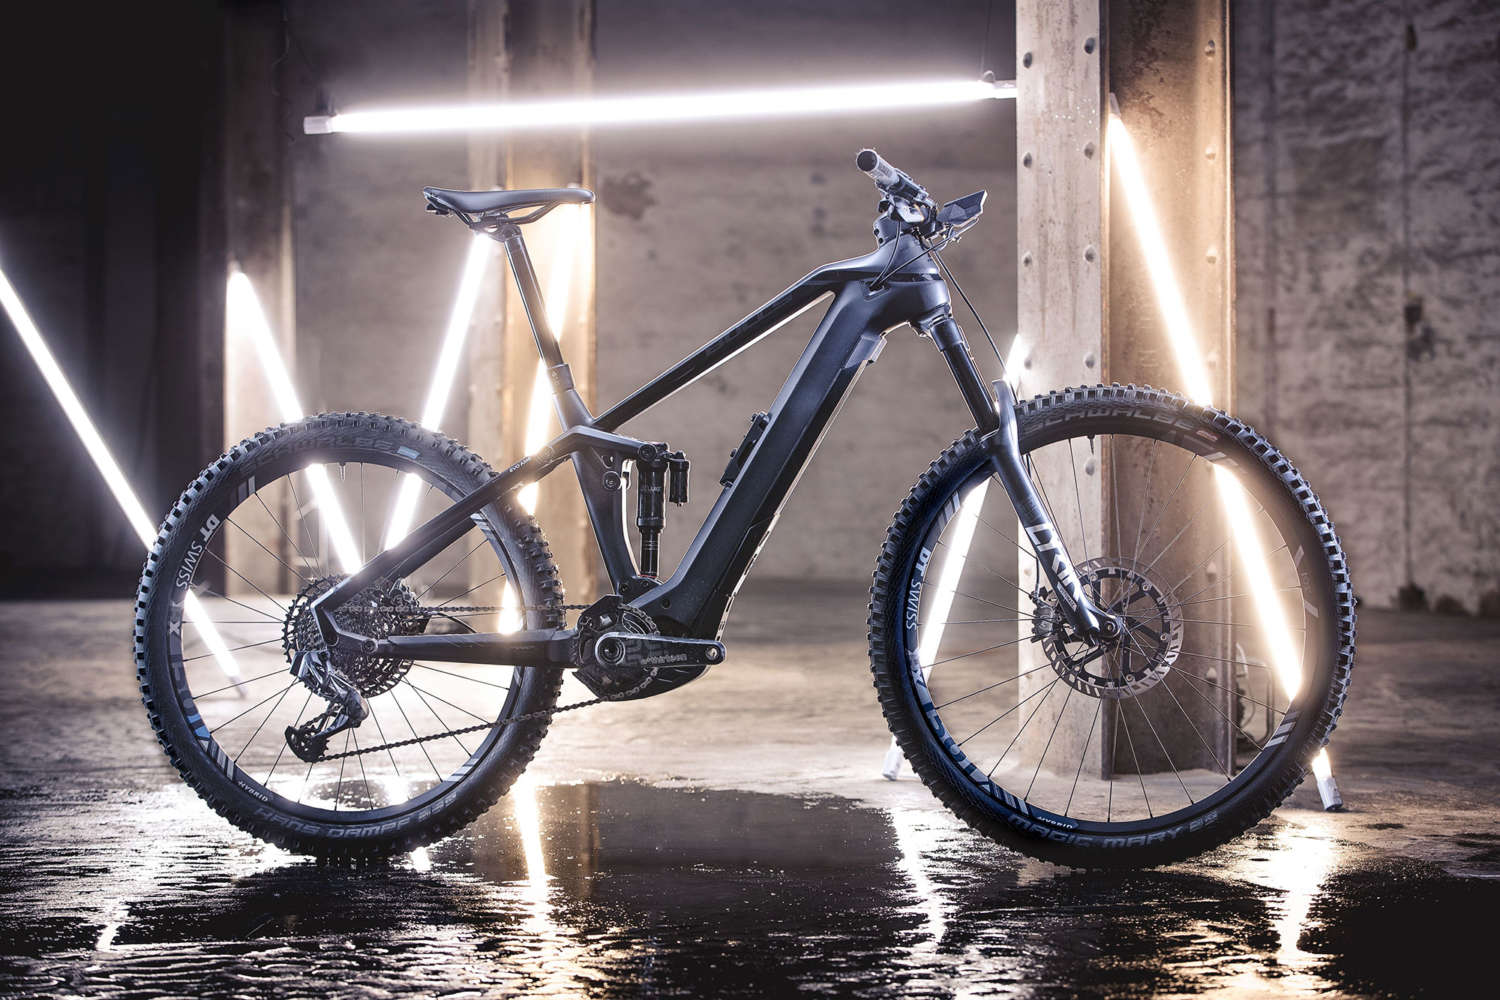 BULLS SONIC EVO AM 6 CARBON Design & Innovation Award 2020 Winner